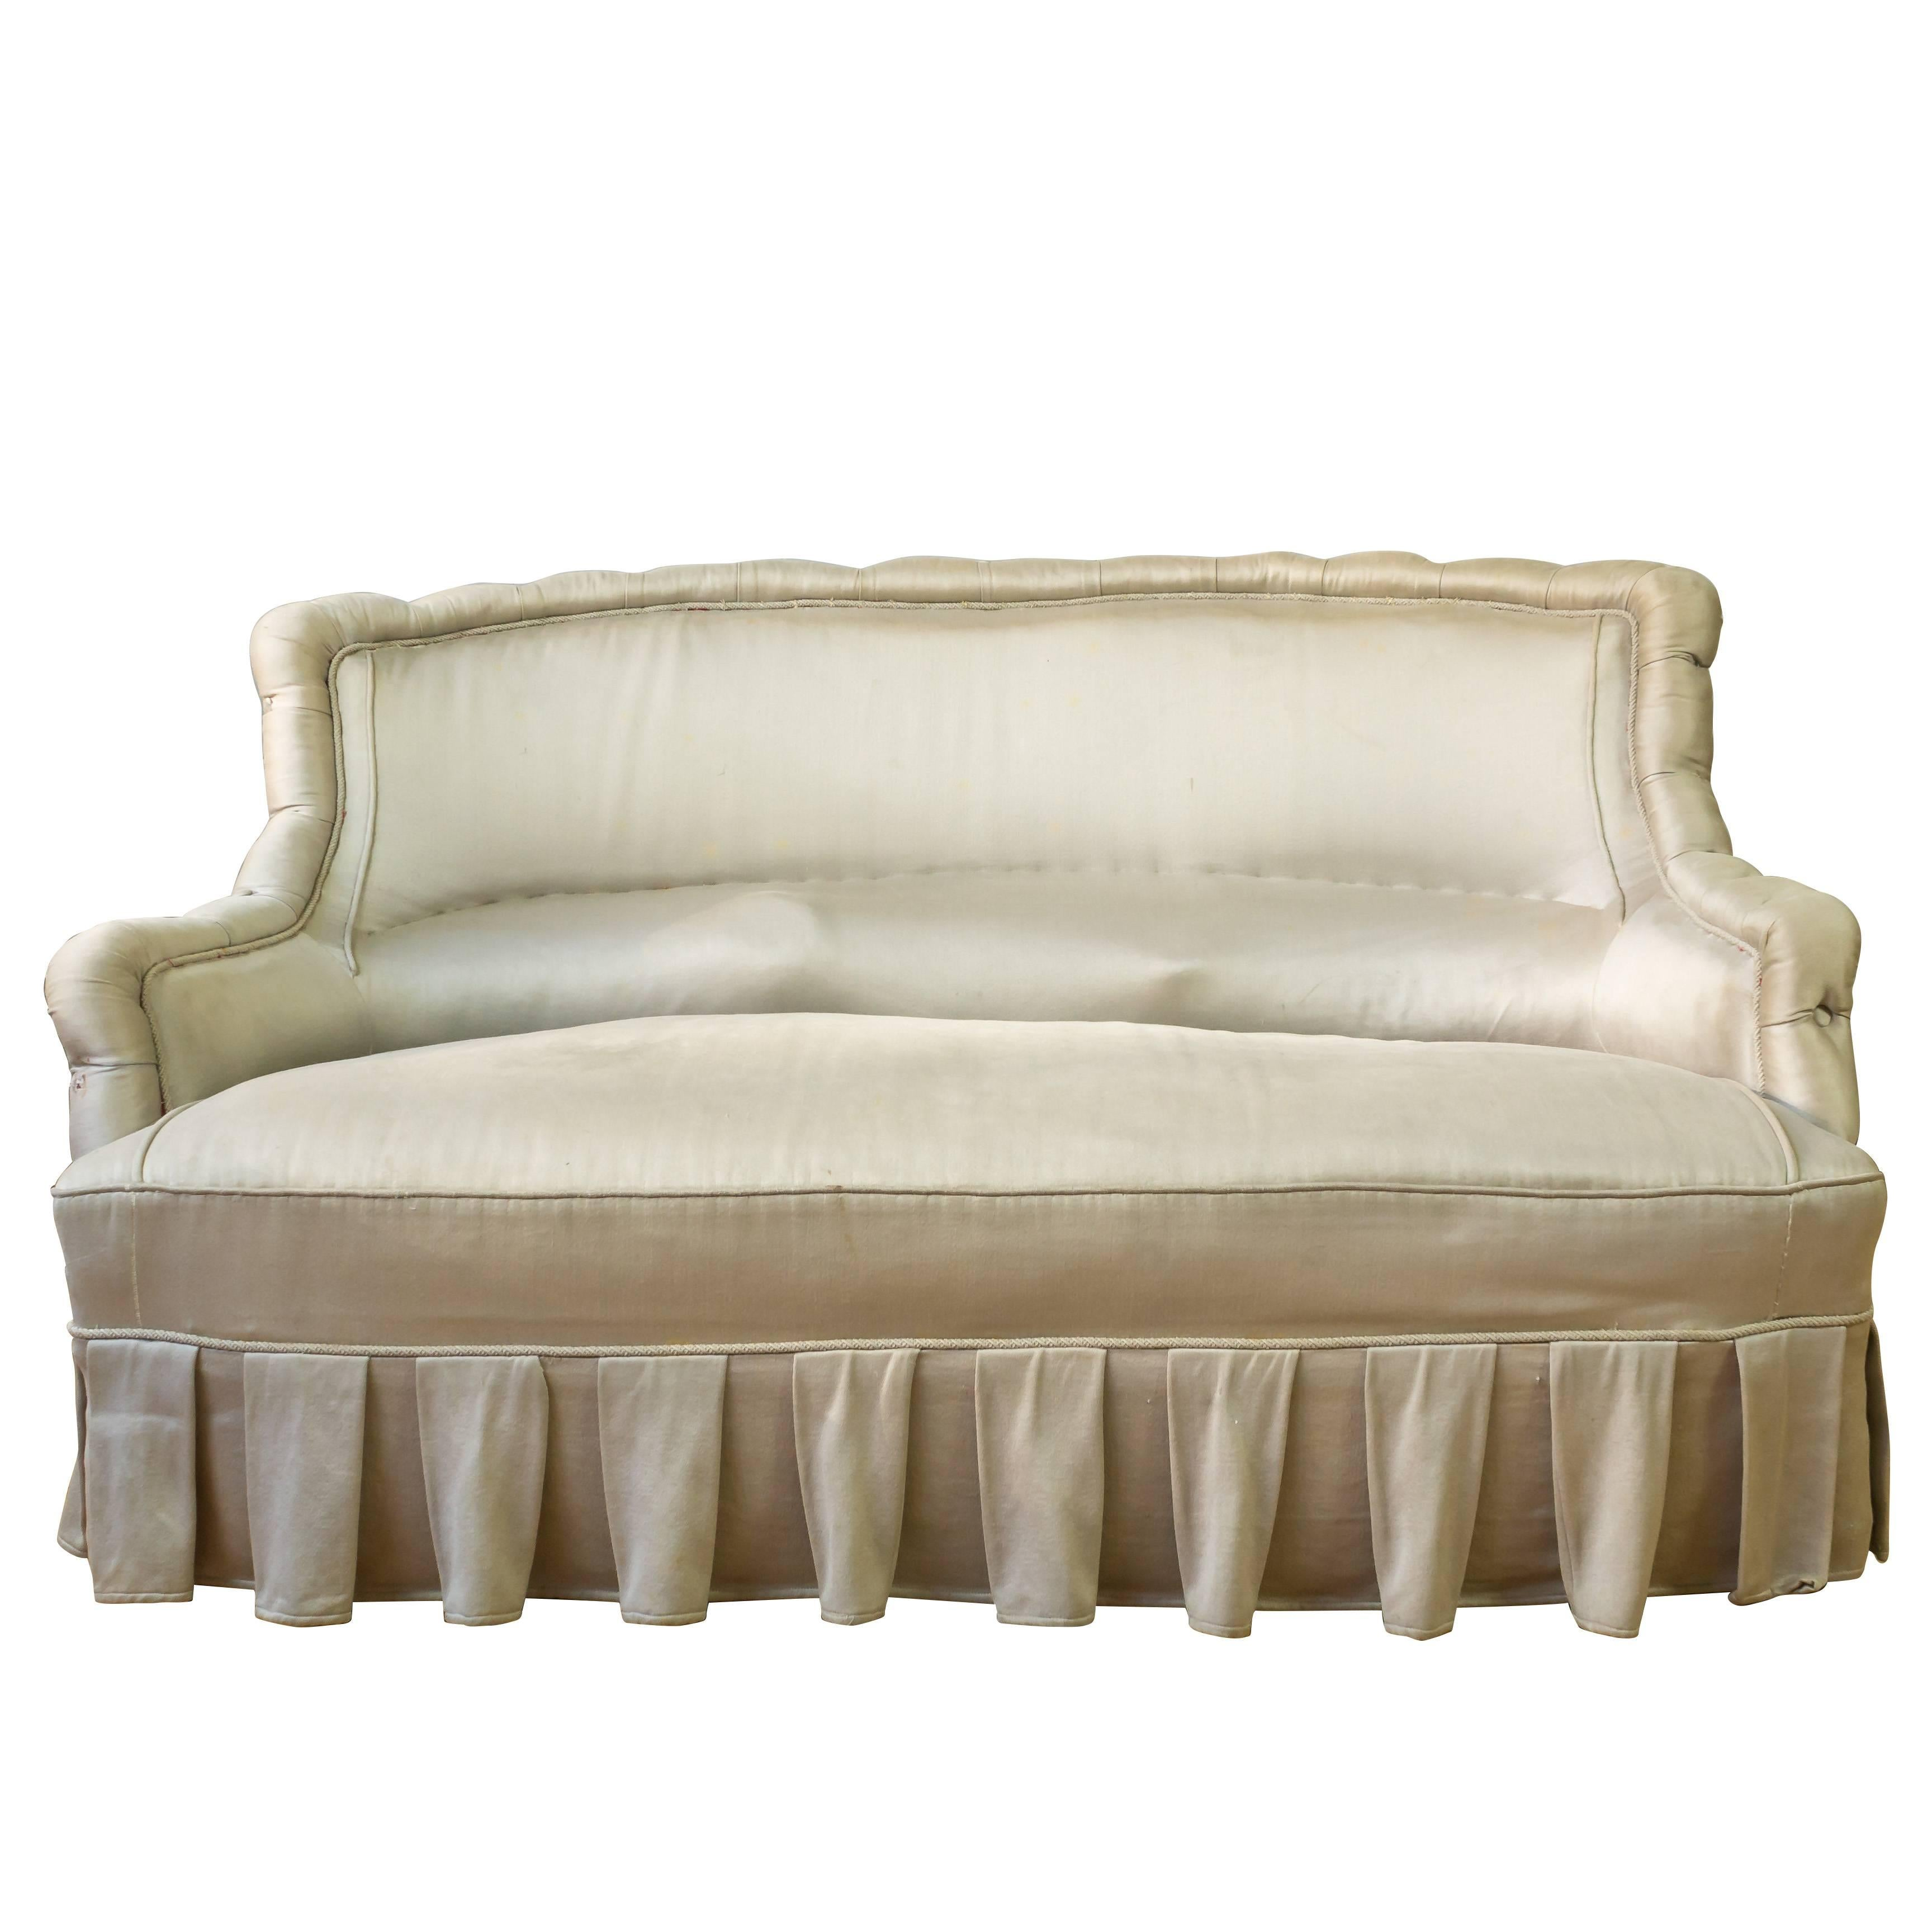 French 19th Century Settee